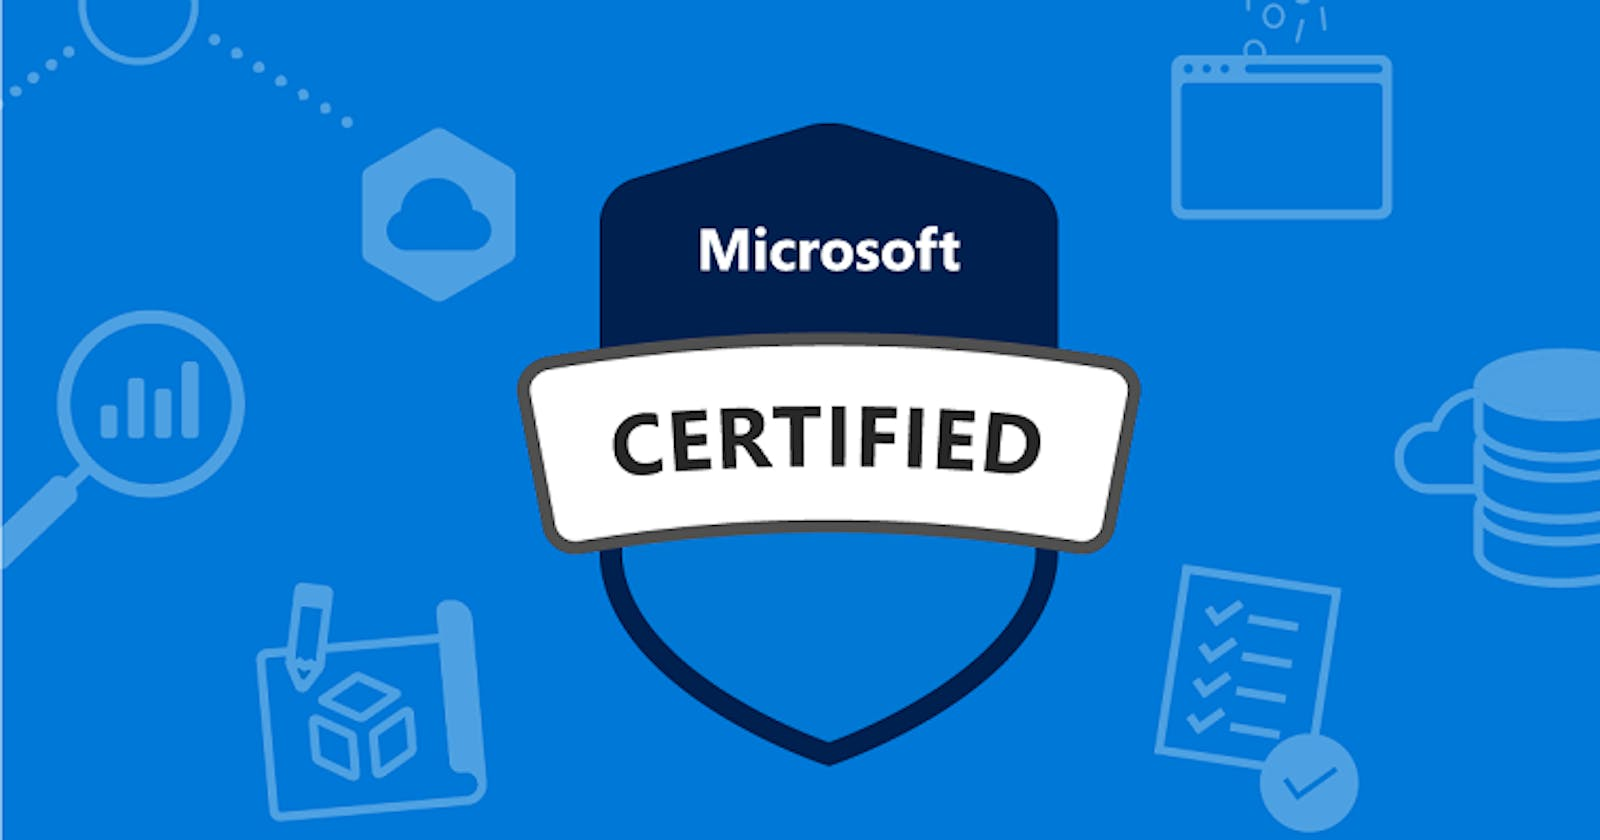 Azure DP-900 Short Notes: Explore roles and responsibilities in the world of data